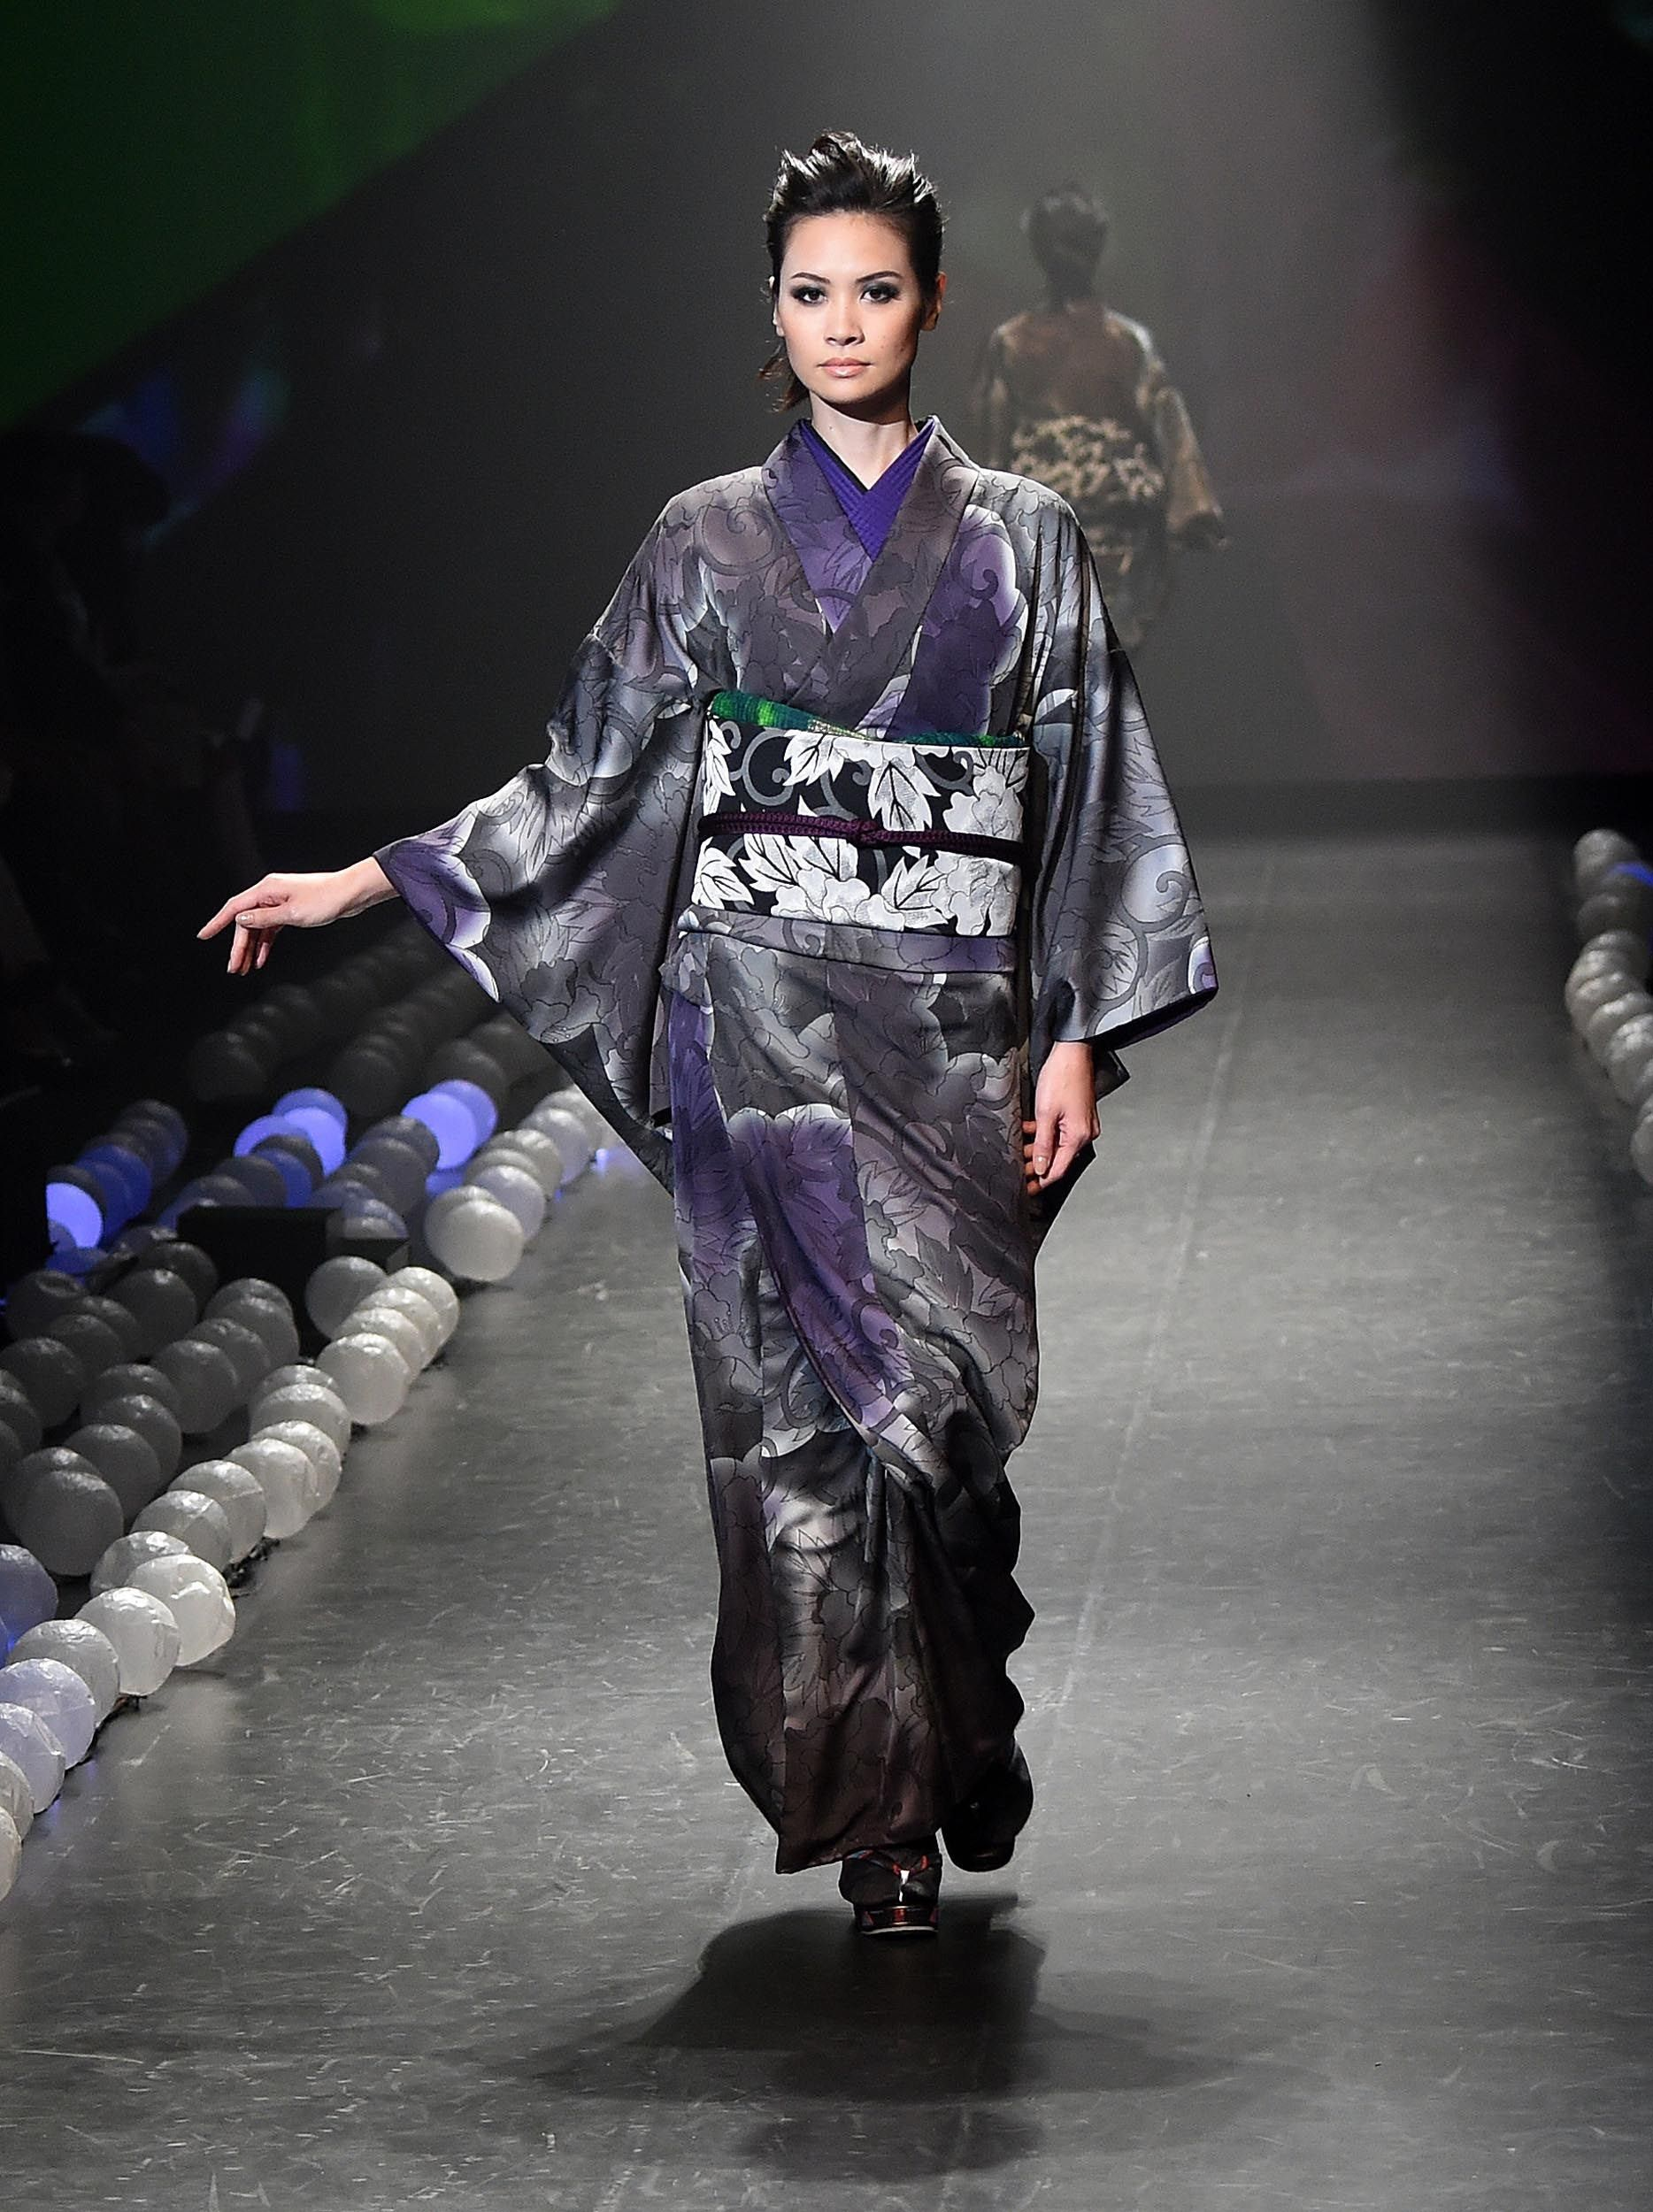 Article expired | Perfect model, Japan and Kimonos - photo#32